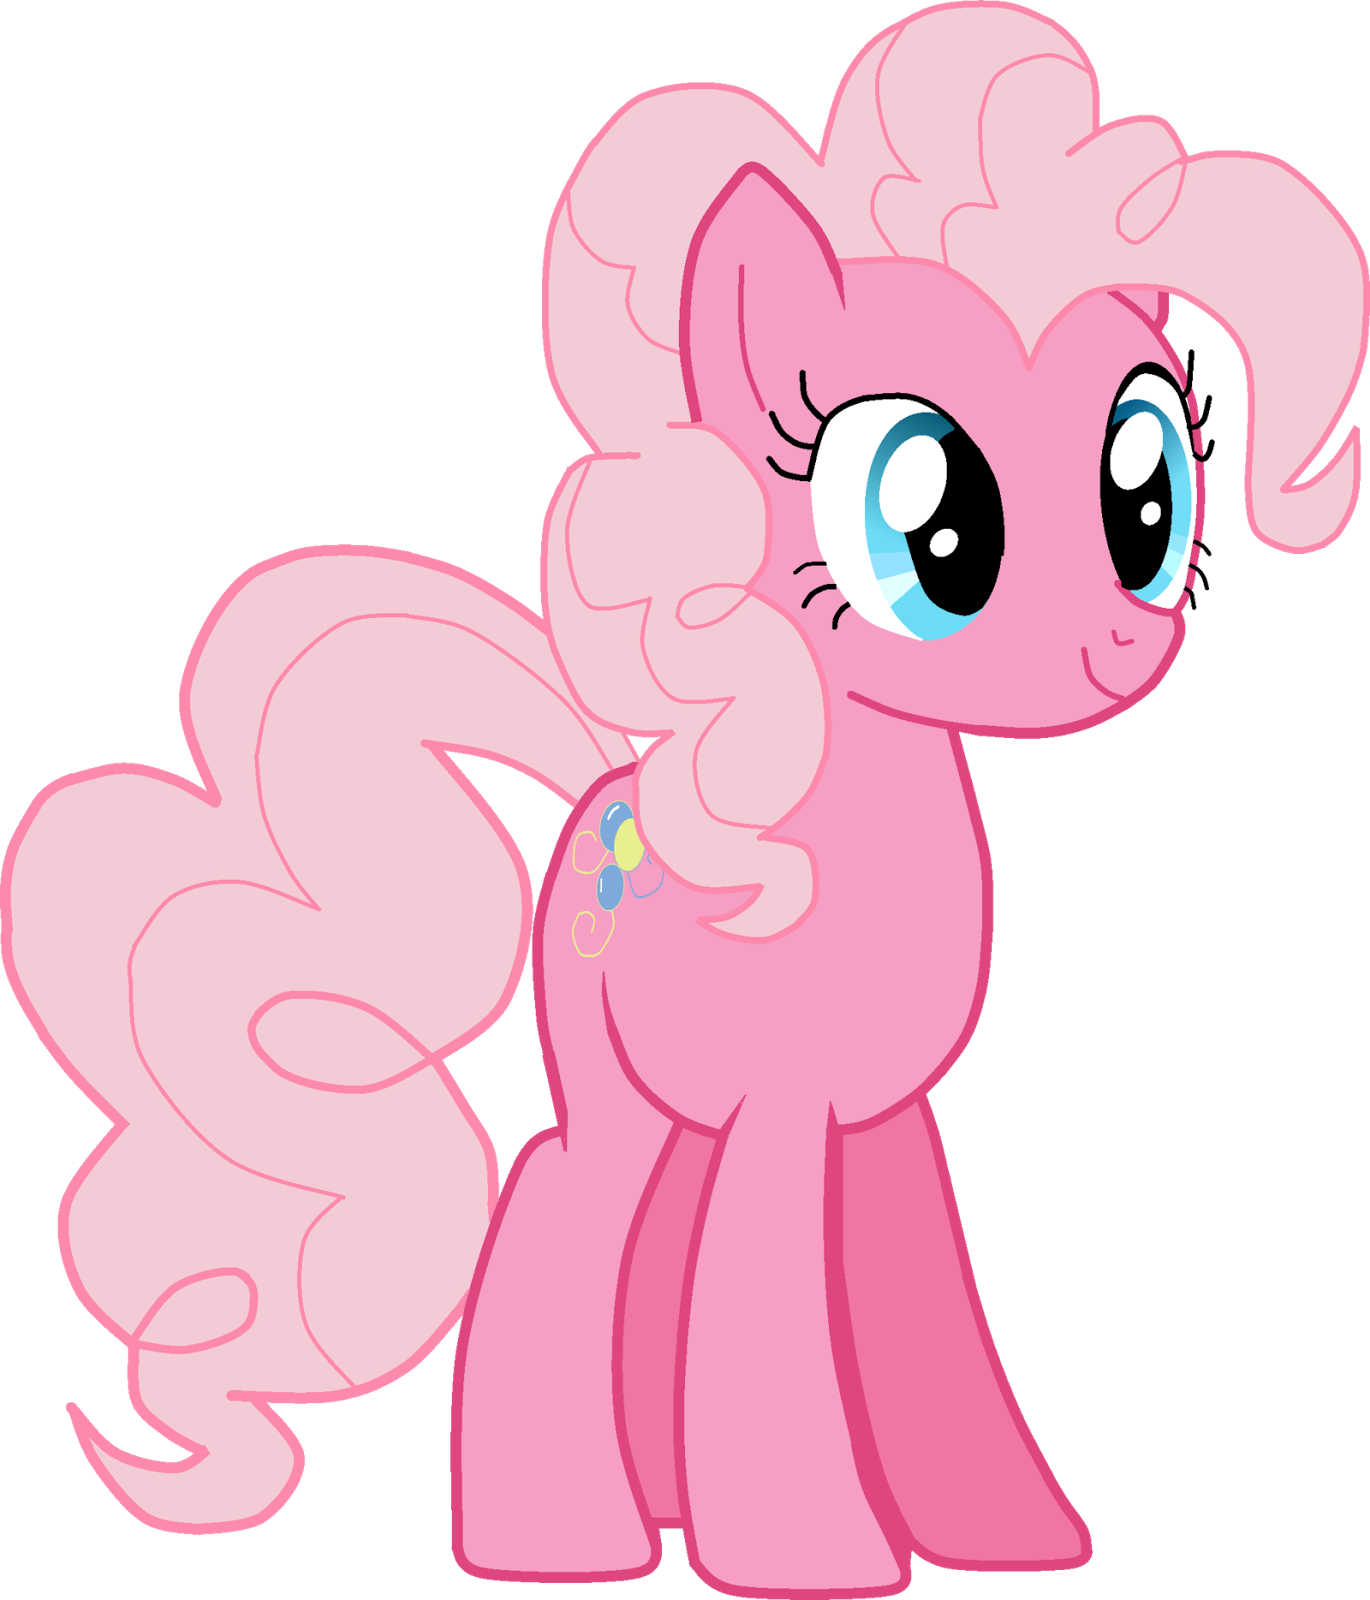 Cartoon Pie Png I I Don T Care How Cute She Is Cartoon Characters That Are Pink 4816448 Vippng